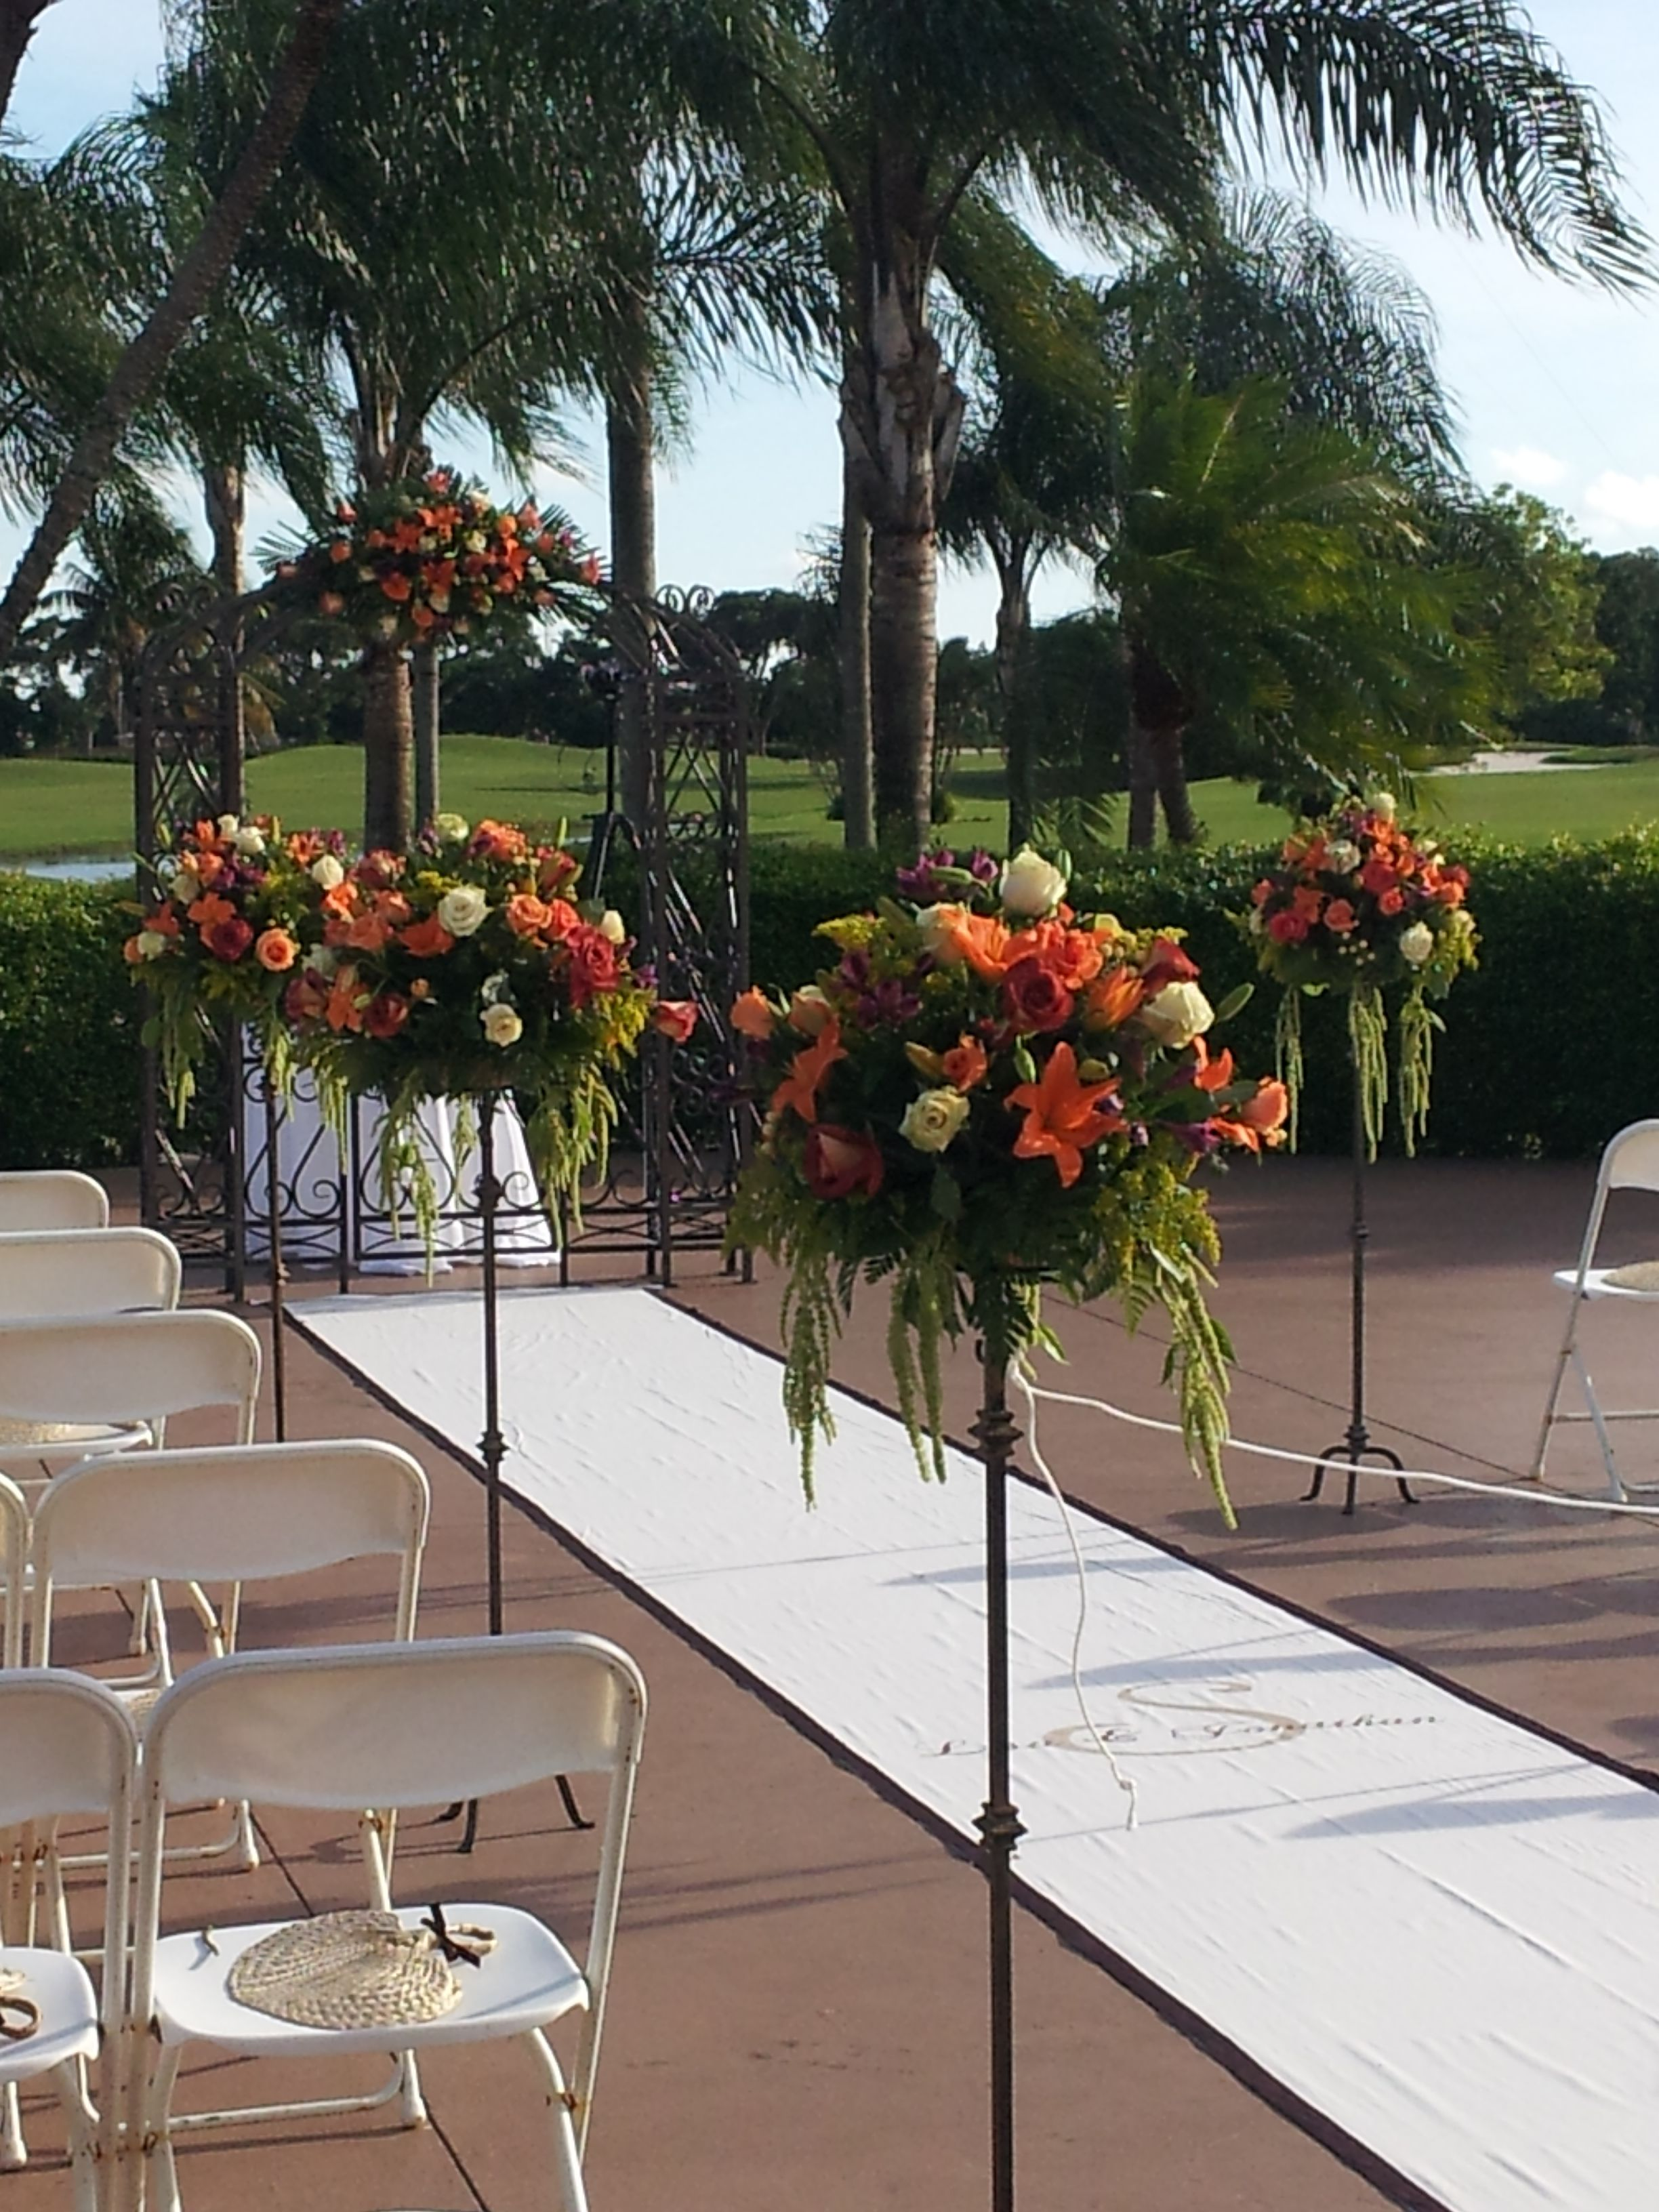 Zulu wedding decorations  Ceremony asile decor Save lots of  by urecyclingu aisle pieces for